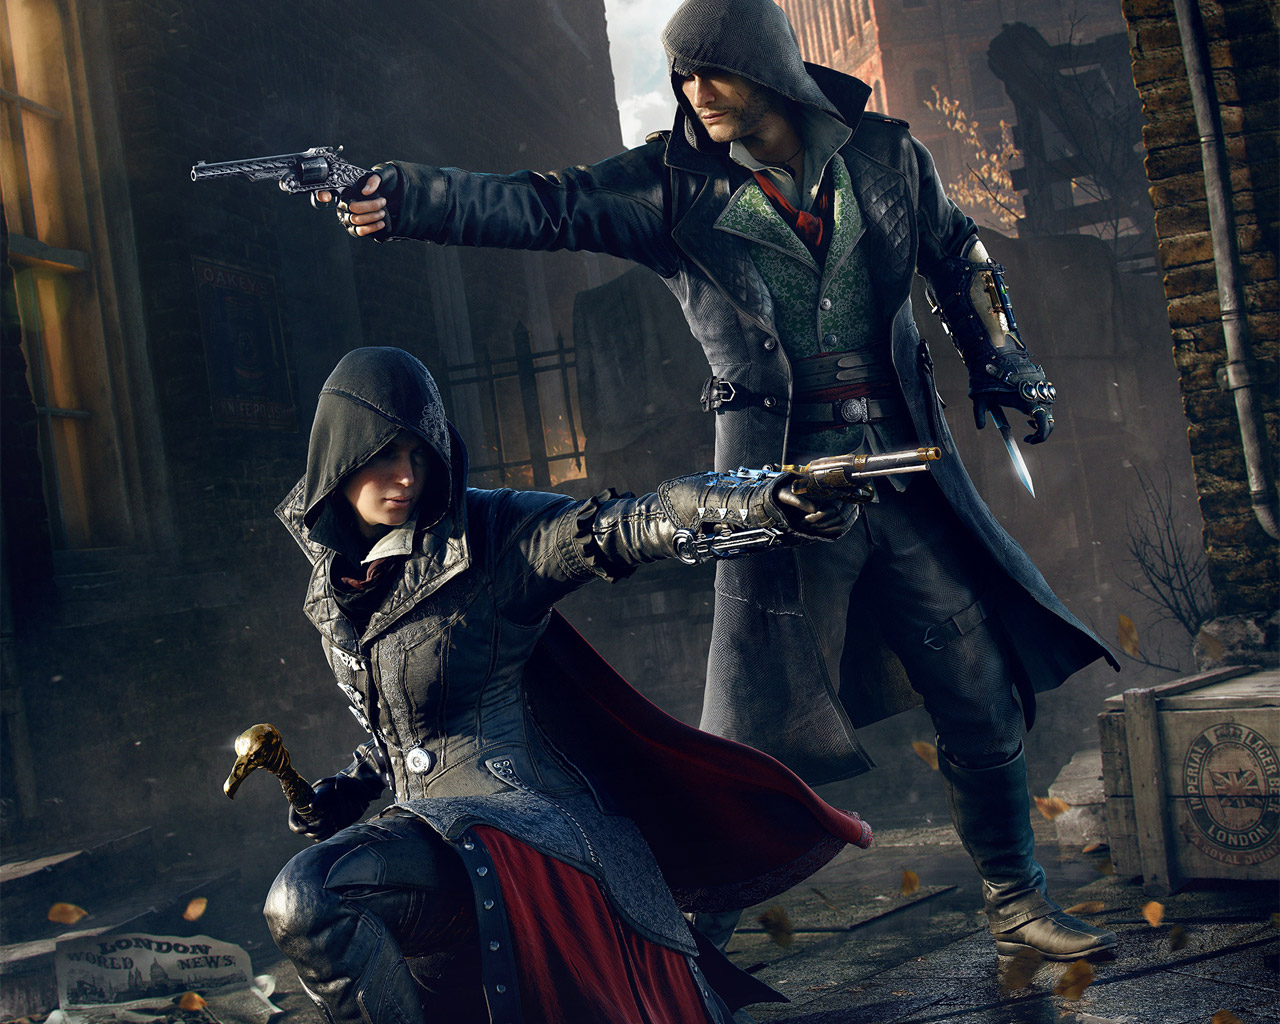 Free Assassin's Creed: Syndicate Wallpaper in 1280x1024